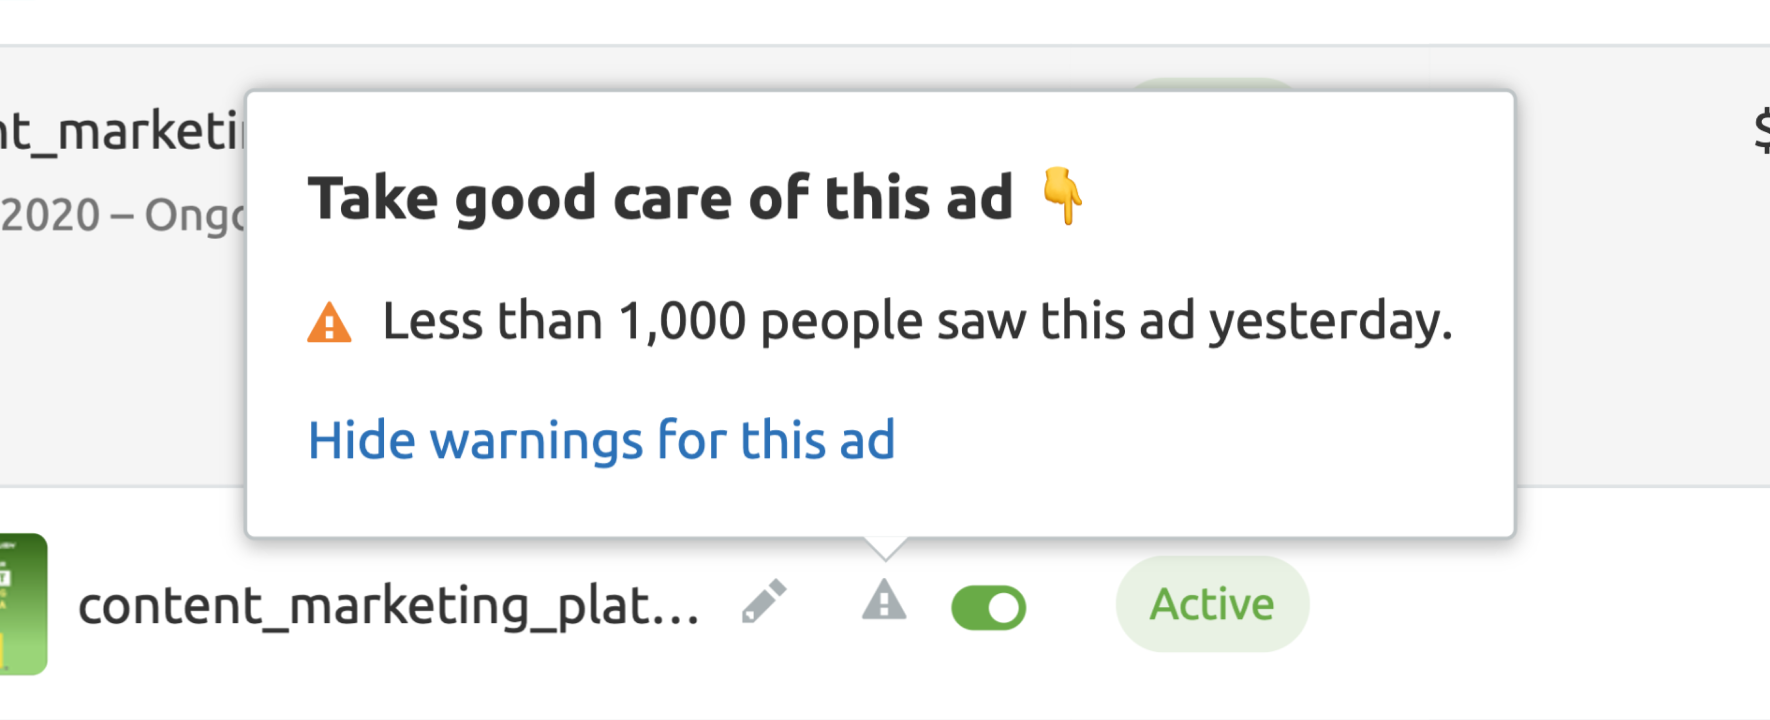 Facebook ads issues - Fewer than 1,000 people saw your ad